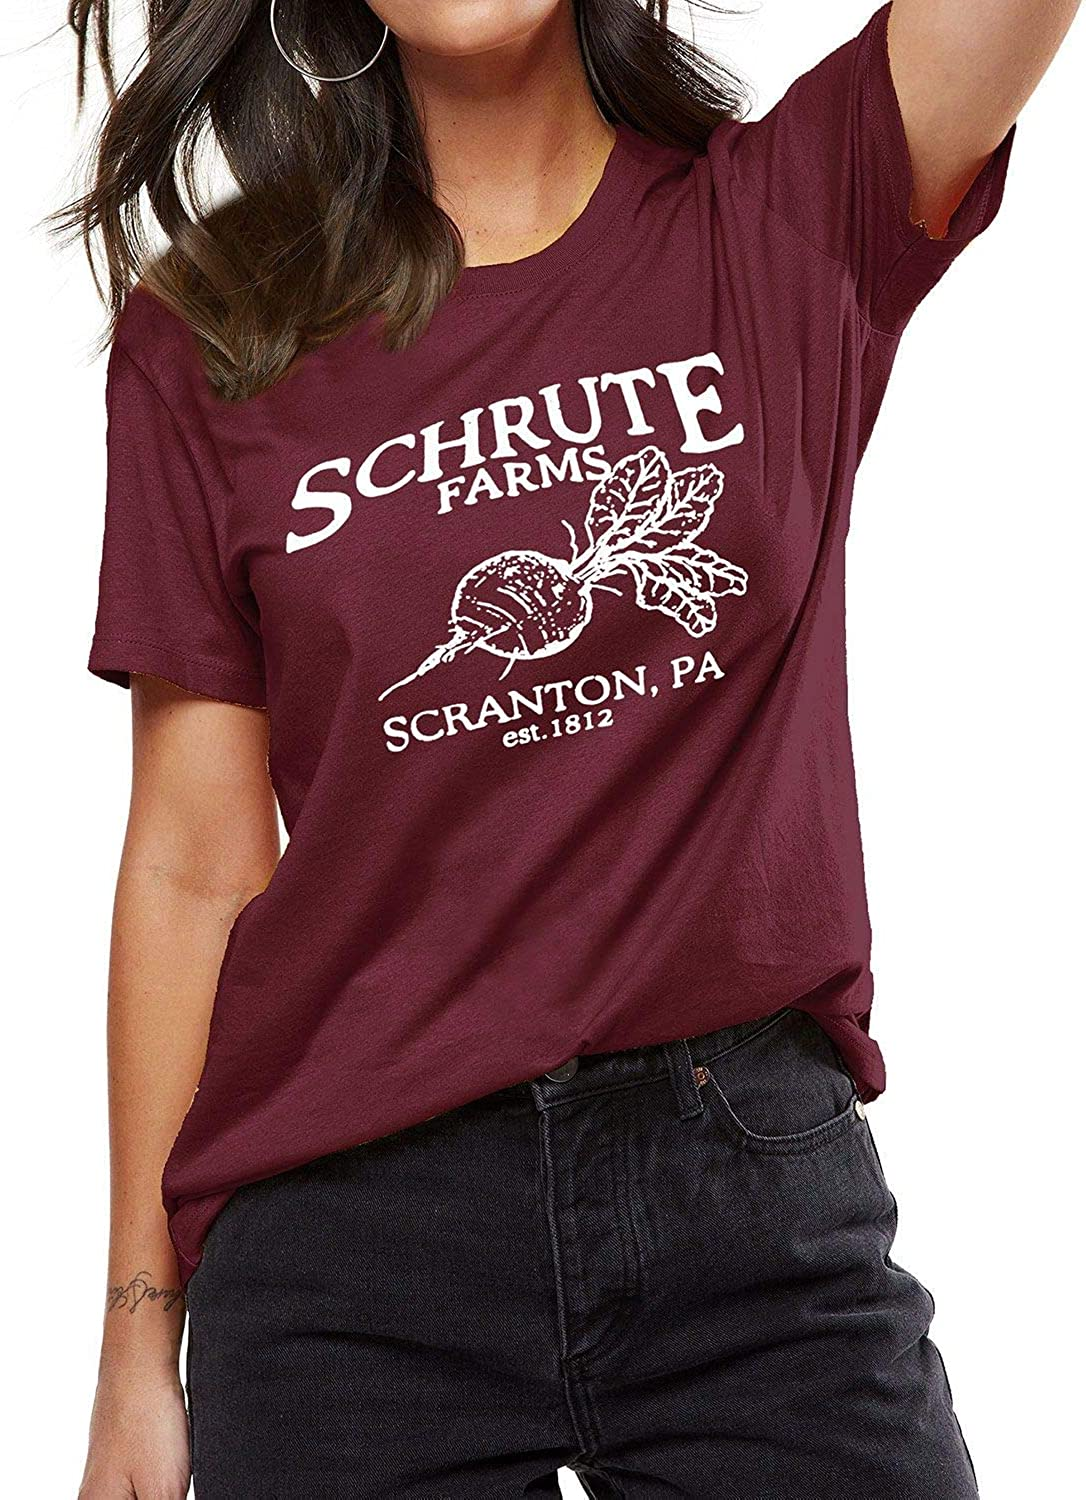 OUNAR Women Schrute Farms Shirt Cute The Office Graphic T-Shirt Sweatshirt with Pocket